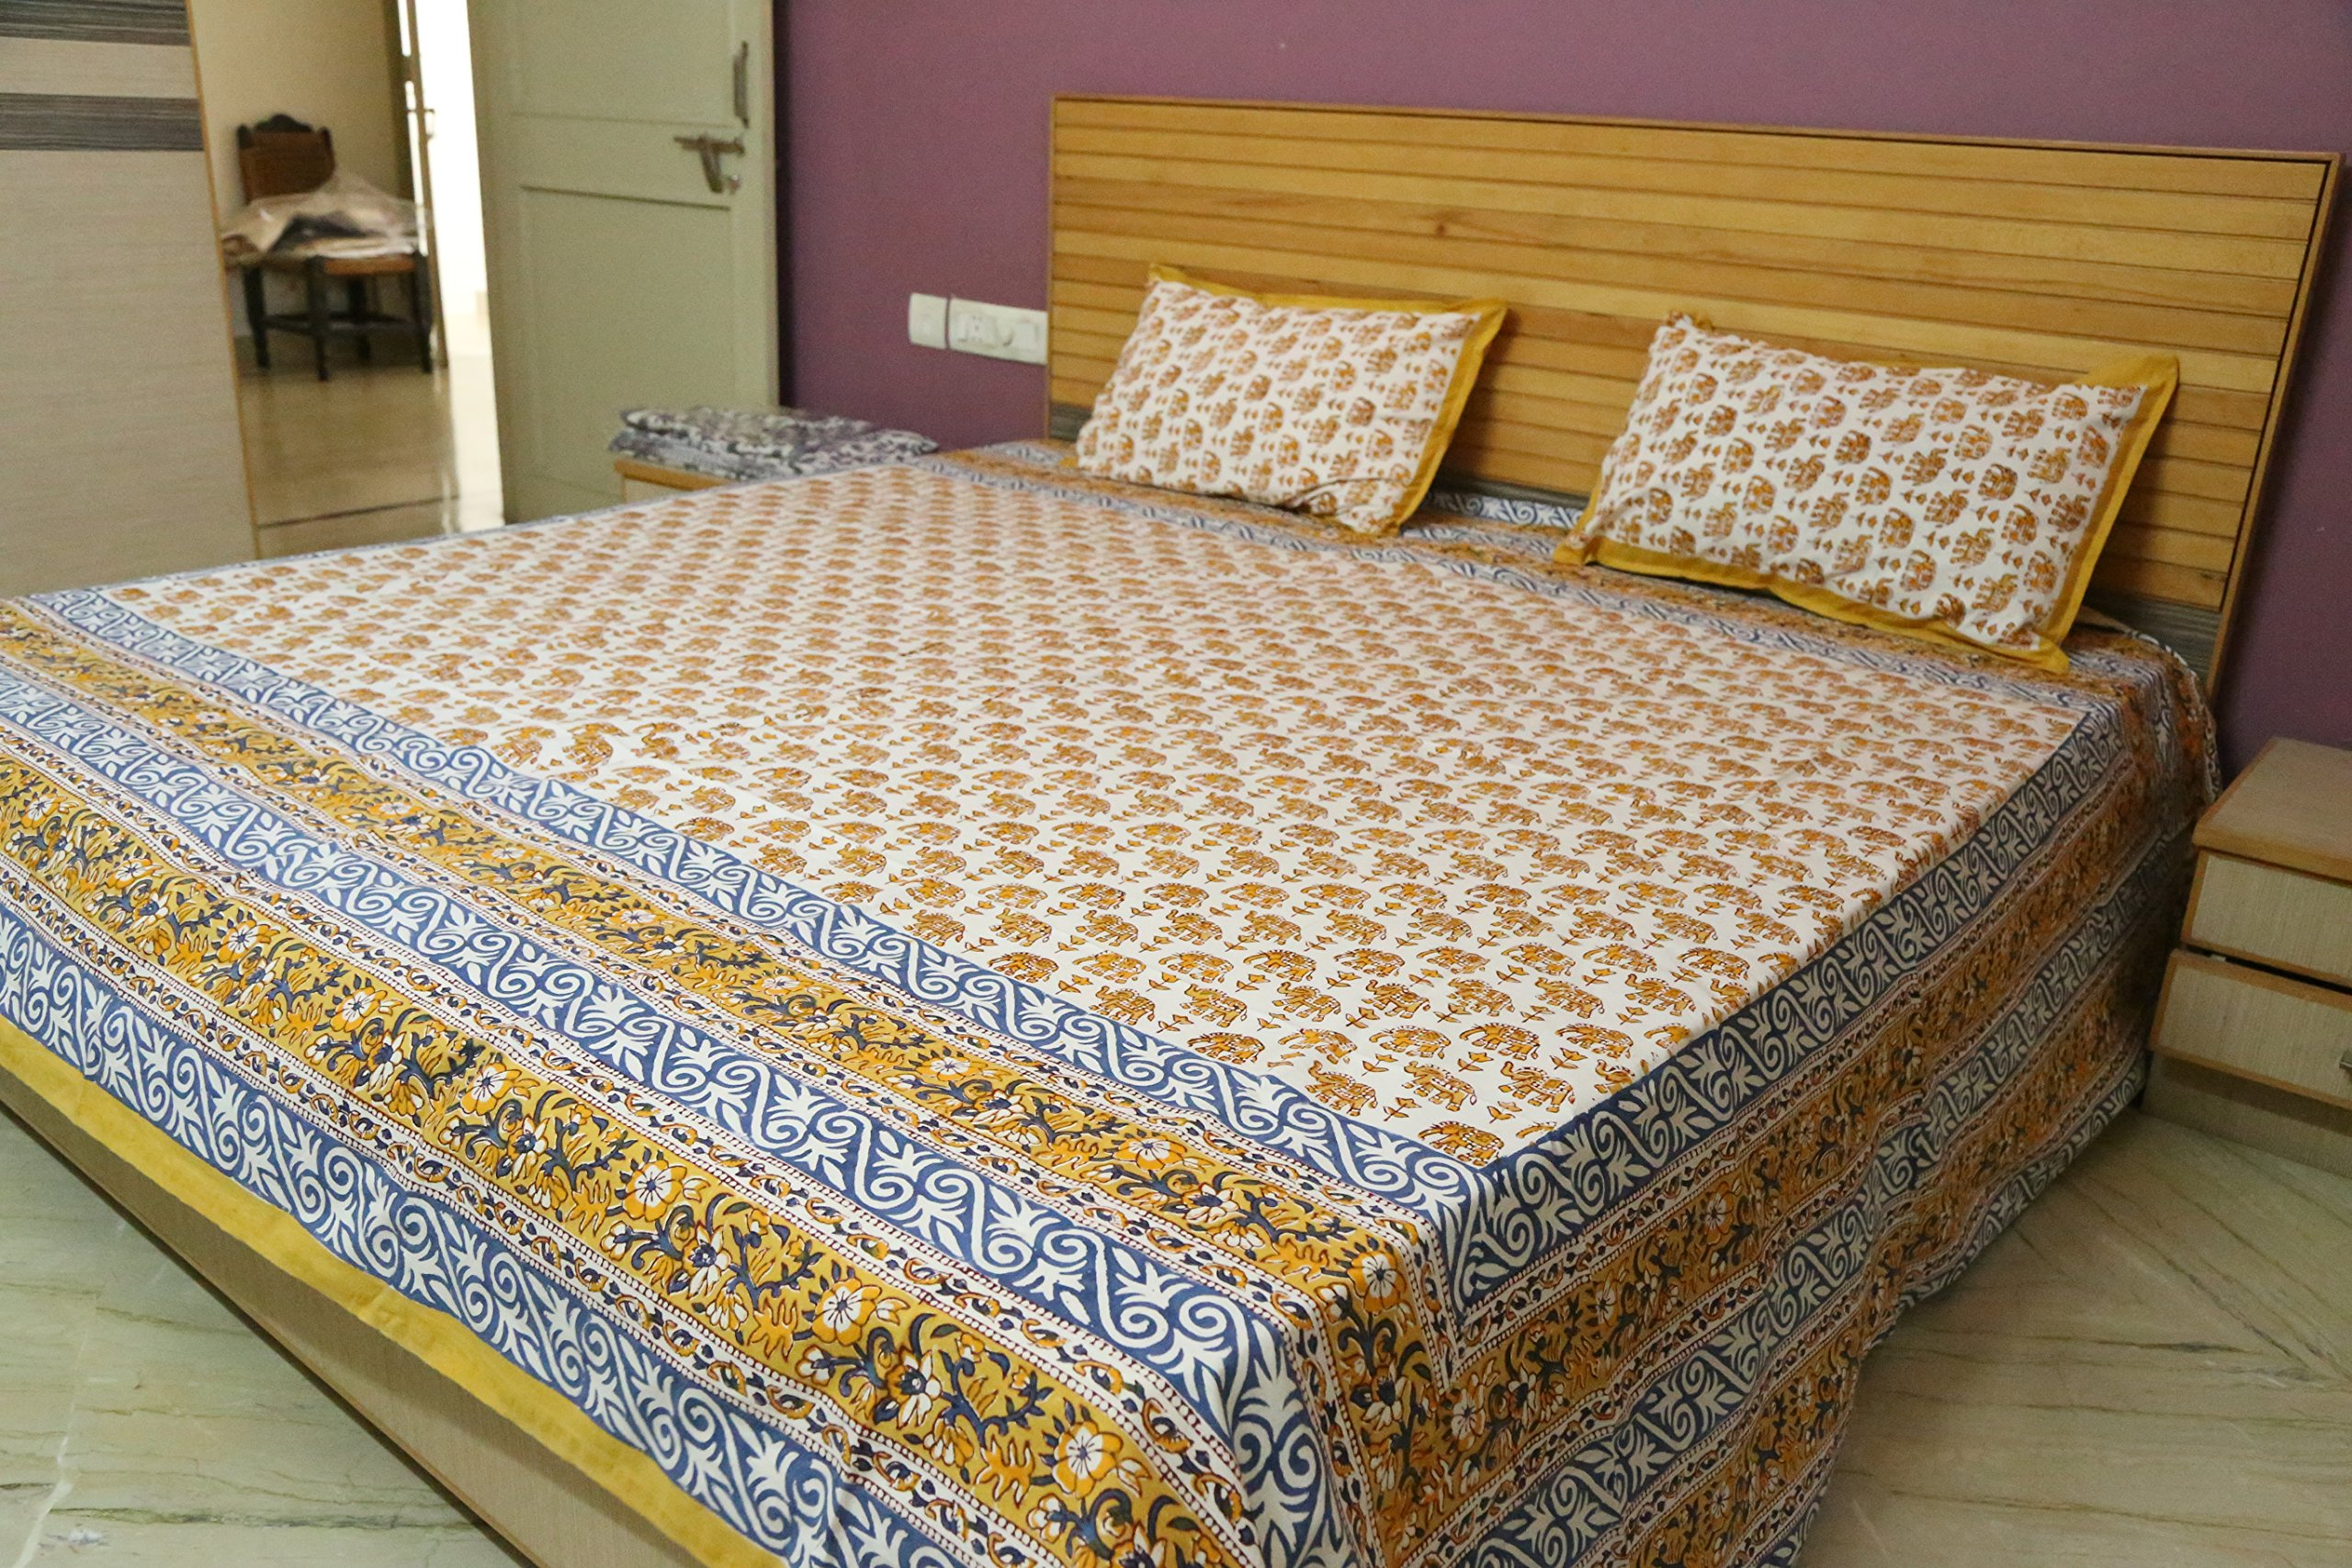 Indian Bedspread Jaipur HAND BLOCK Printed Authentic Traditional Cotton Double-Bed Size Bedsheet With 2 Pillow Covers Indian Tapestry Elephant Print 108''x90'' by ArtMartJaipur (Image #2)